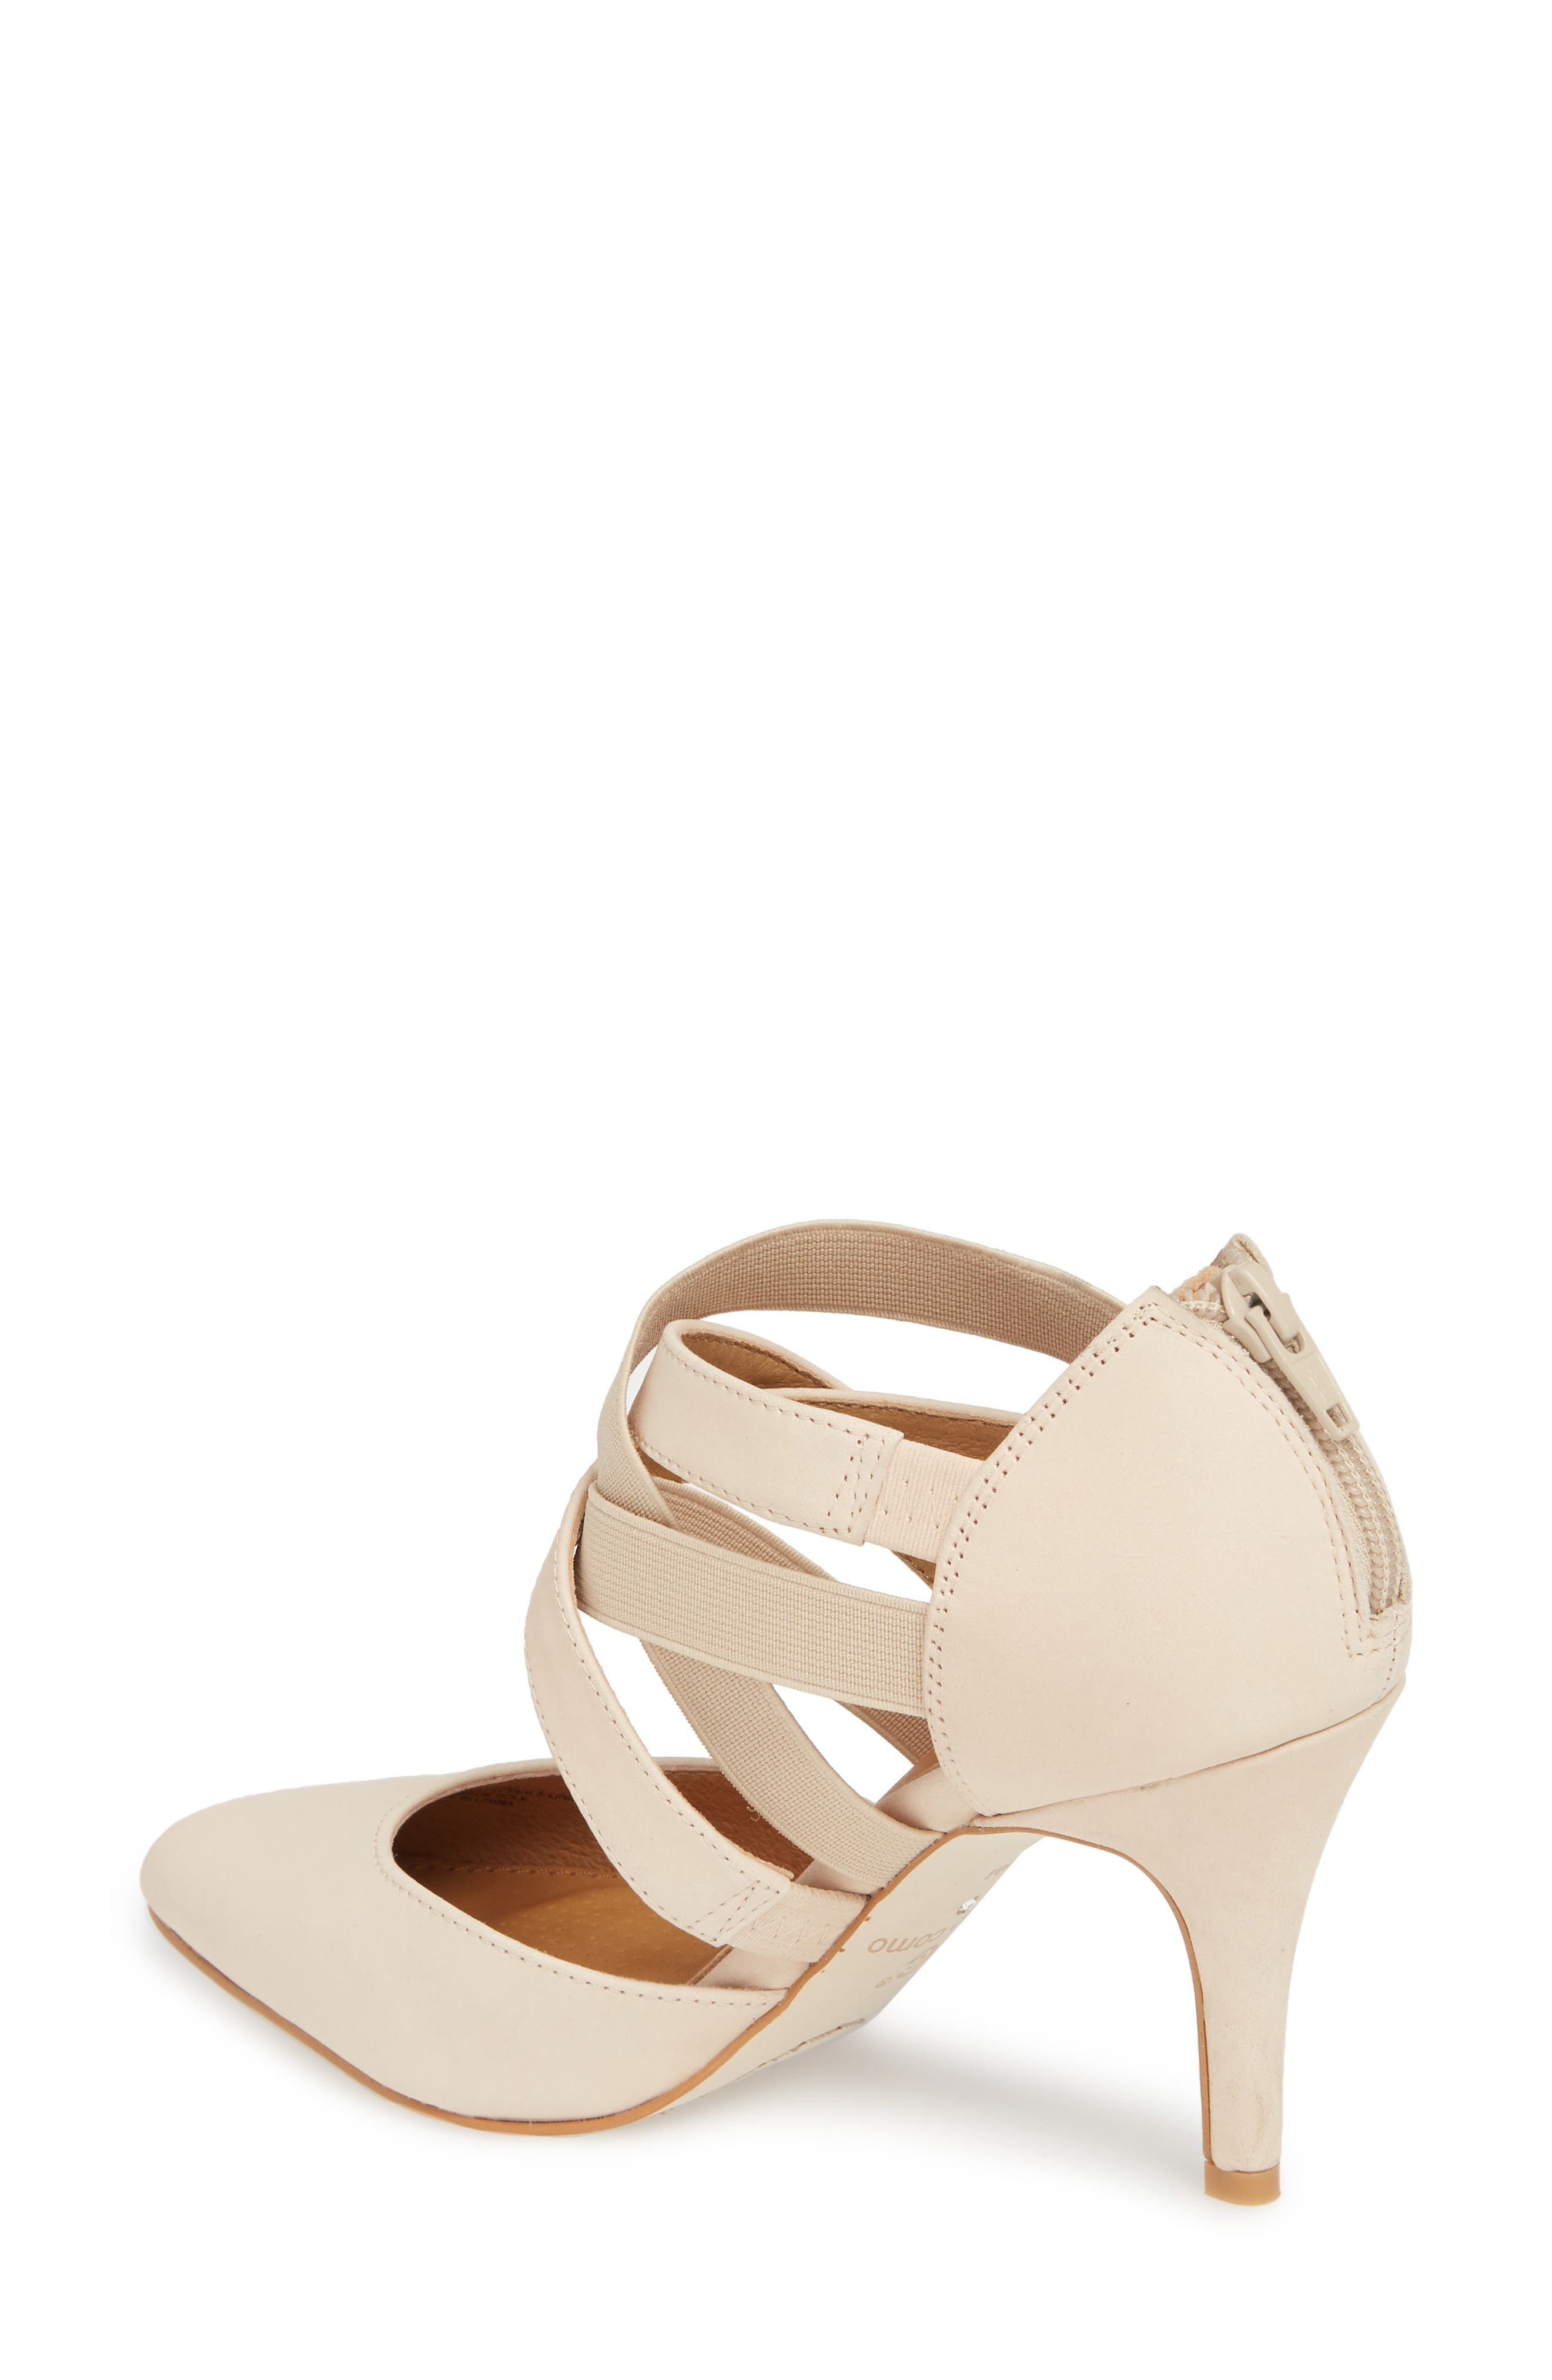 Crystal Strappy Pump,                             Alternate thumbnail 2, color,                             NUDE NUBUCK